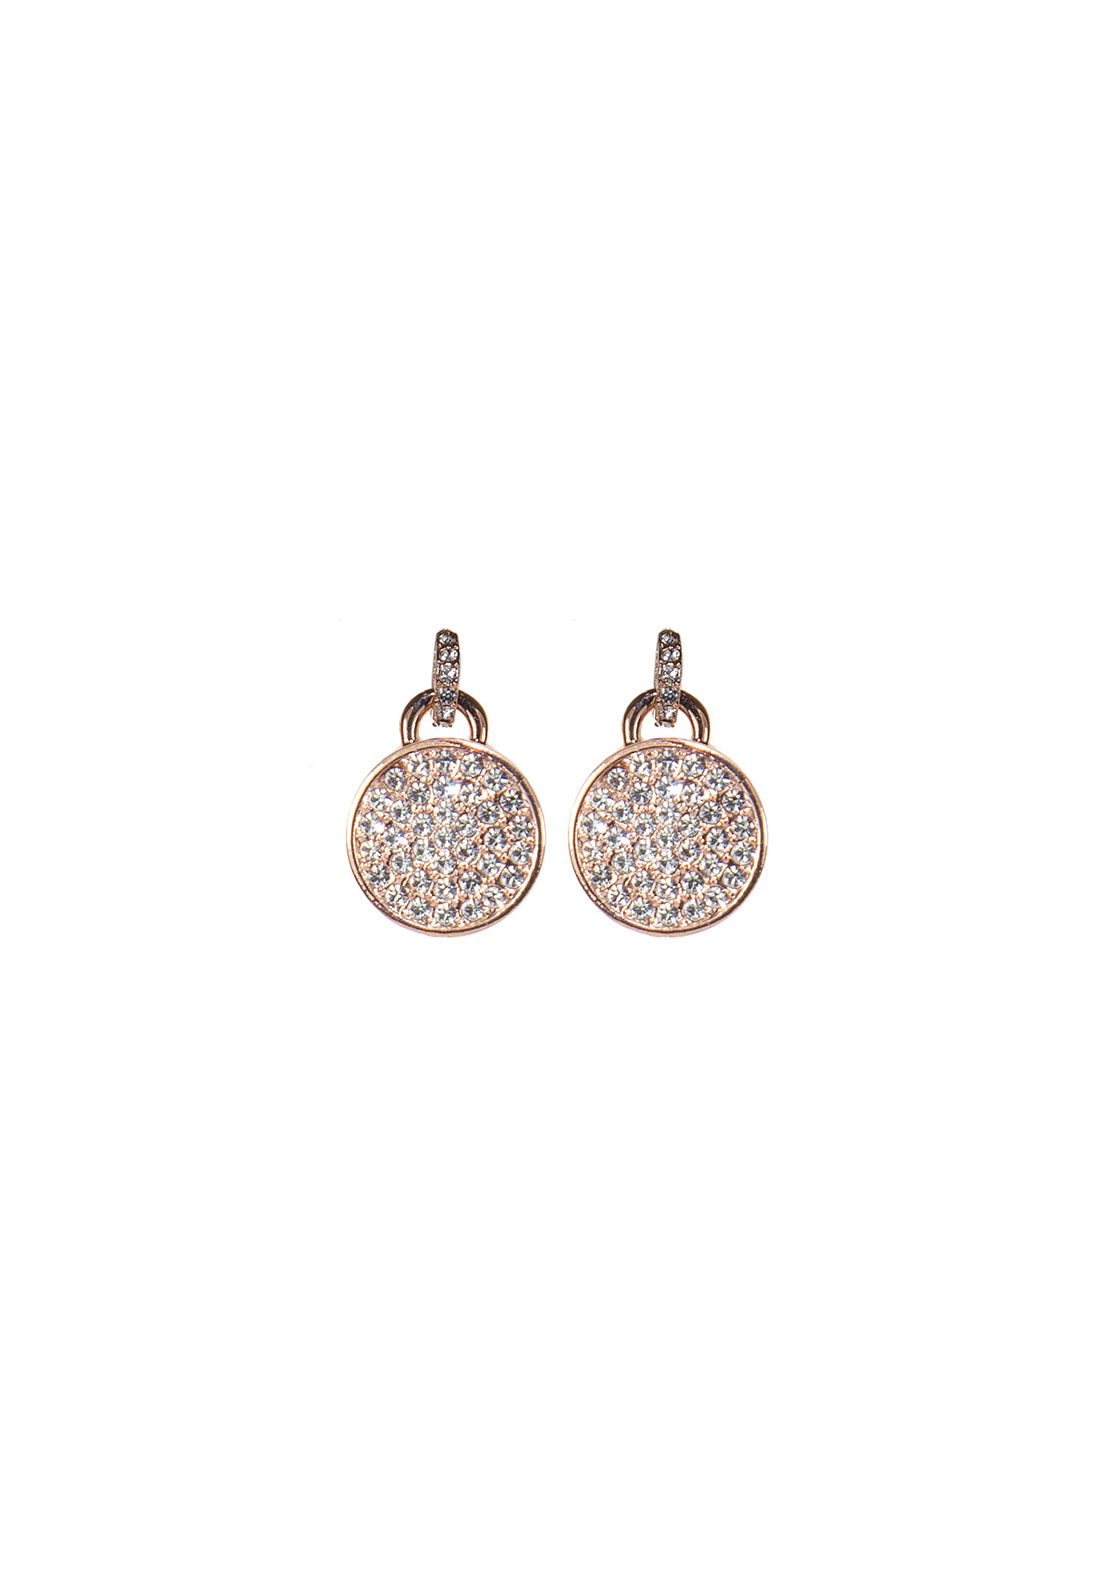 Absolute Jewellery Pave Disc Earrings